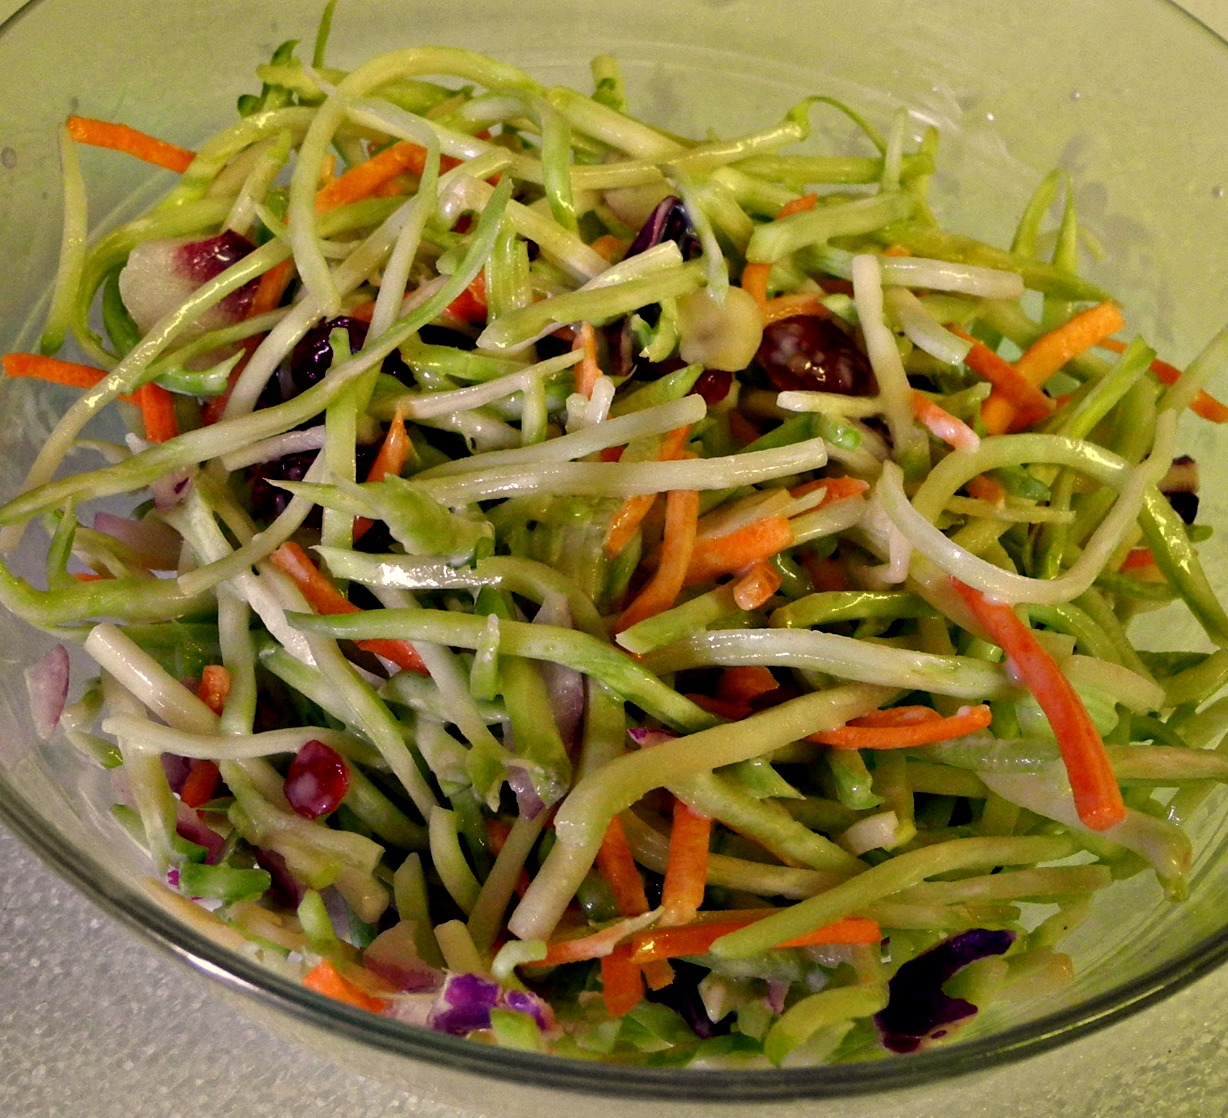 Broccoli Slaw with Cranberries, Almonds and Yogurt Dressing